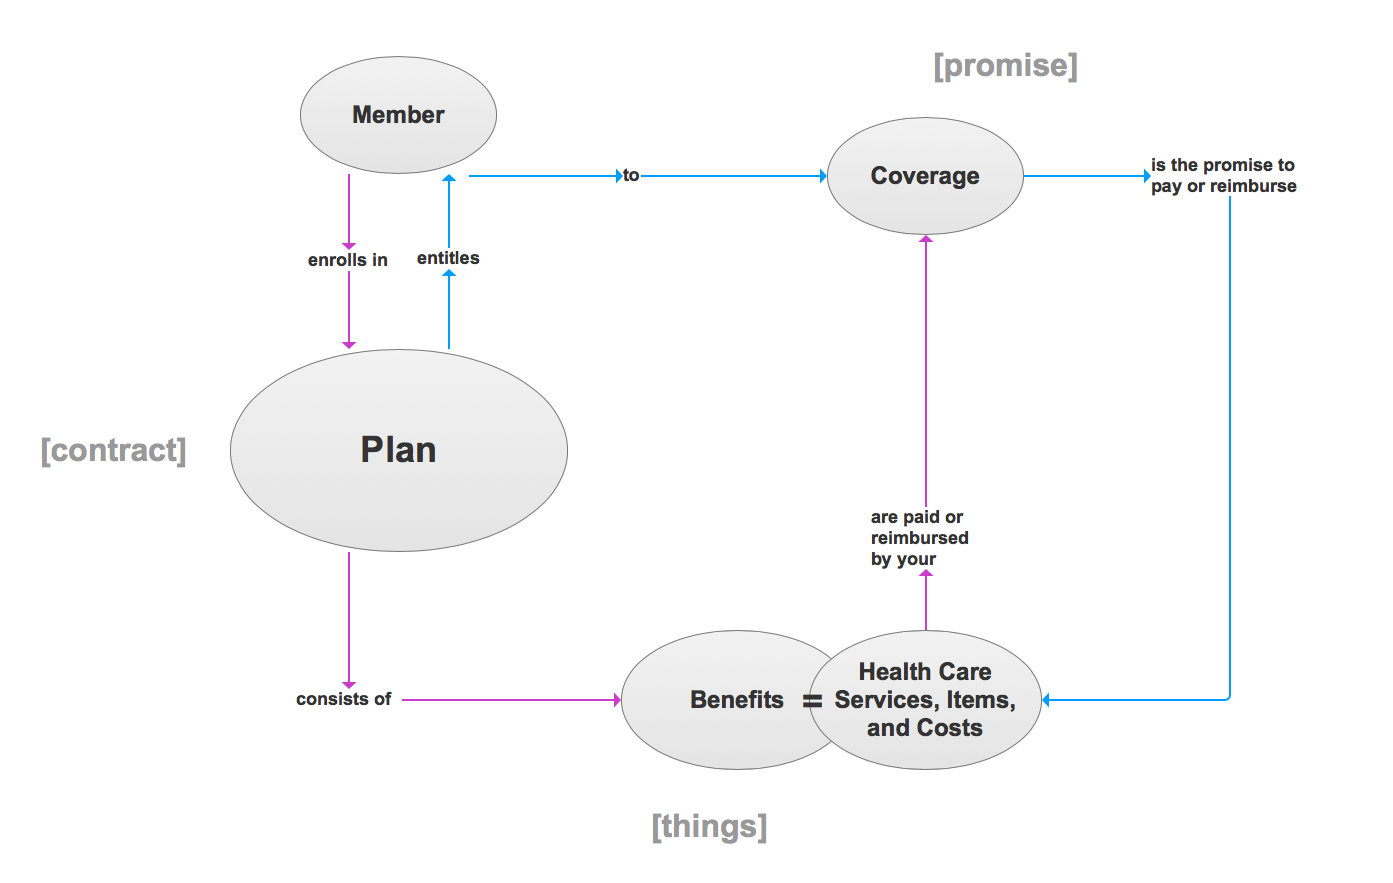 Components and relationships of a health insurance plan.